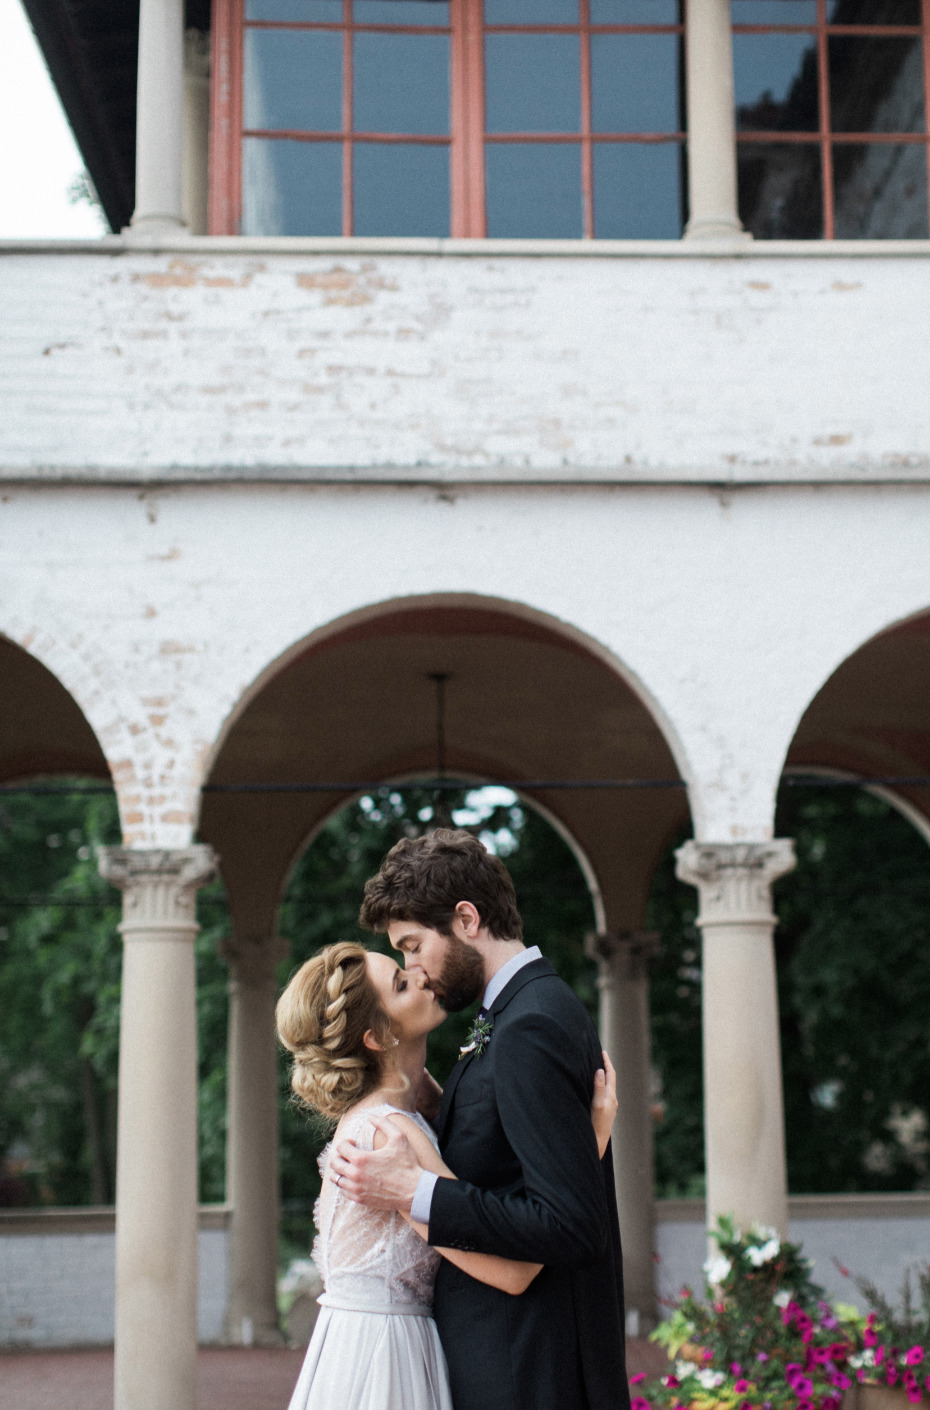 Italian villa inspired wedding venue